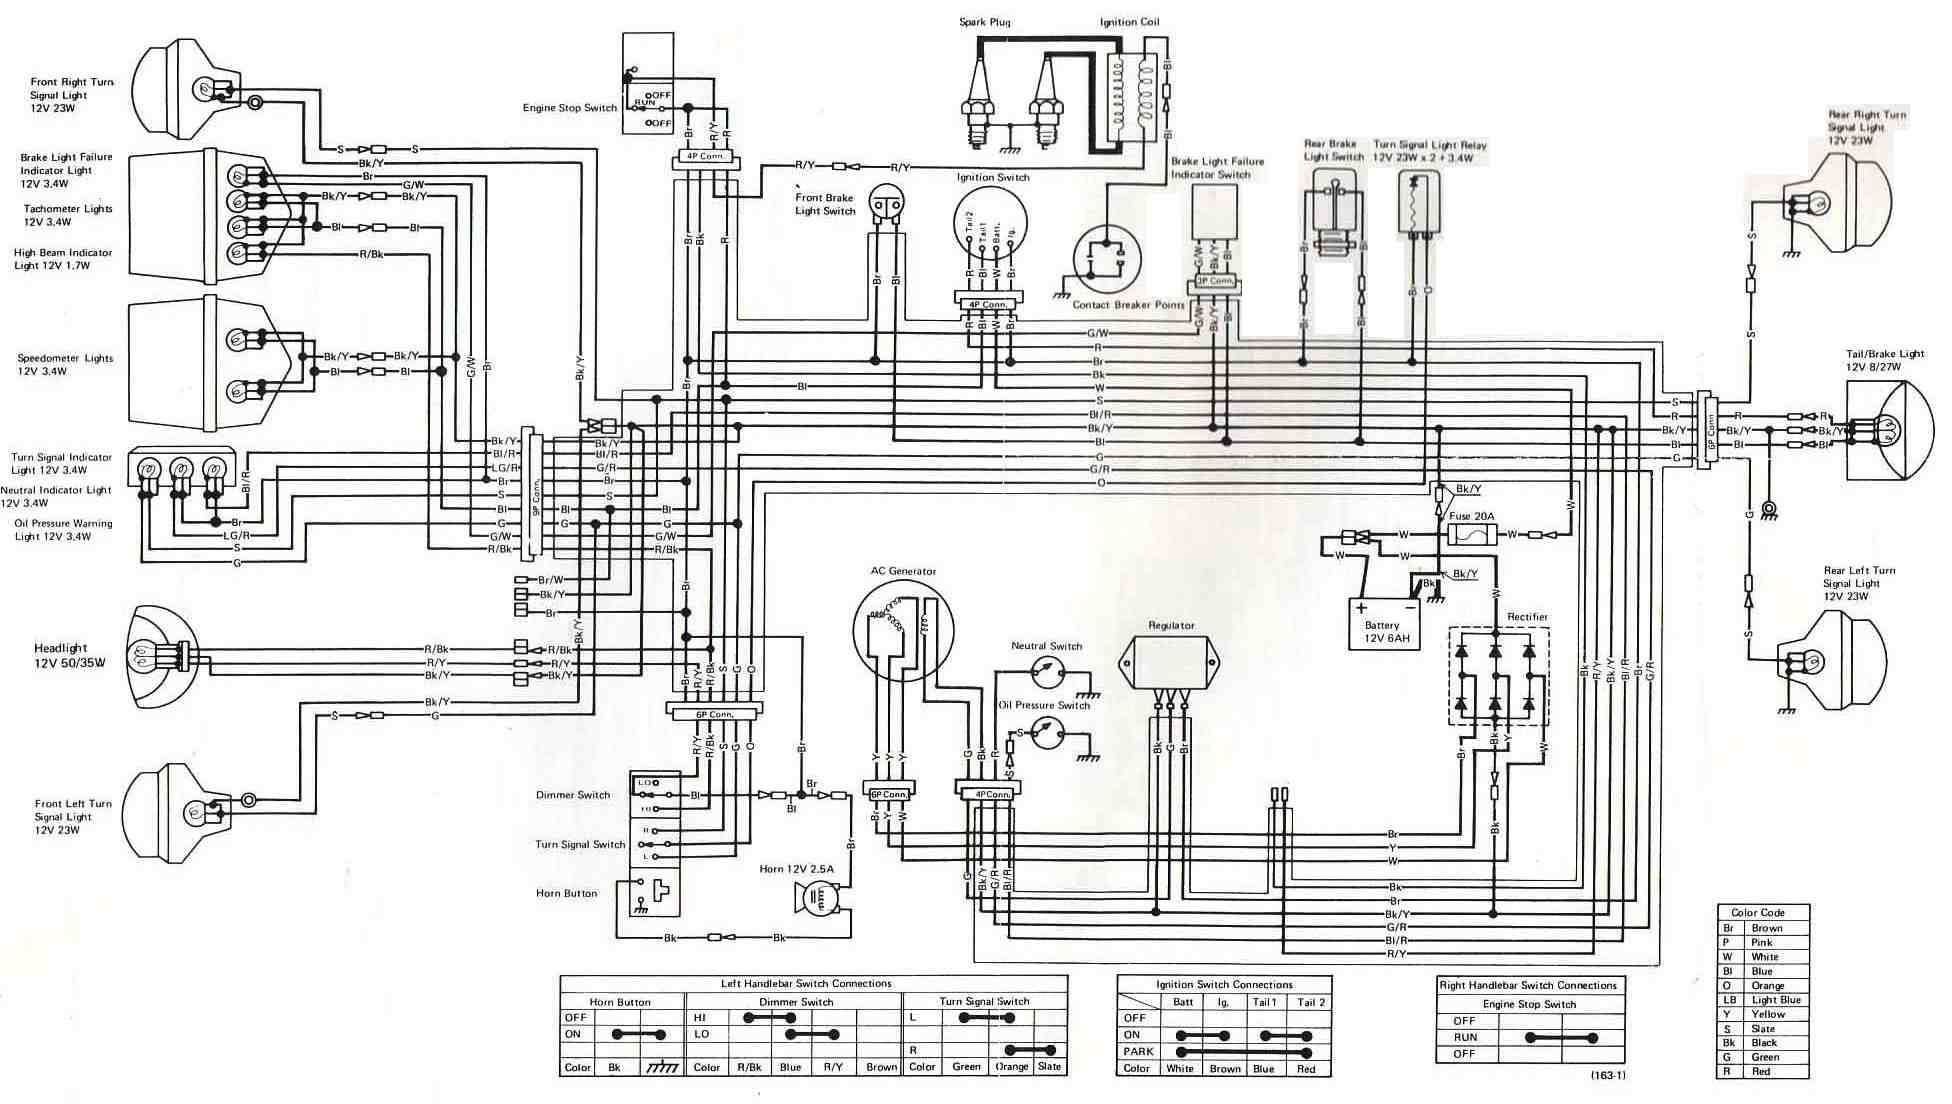 2006 Kawasaki 360 Wiring Diagram | Wiring Diagram on